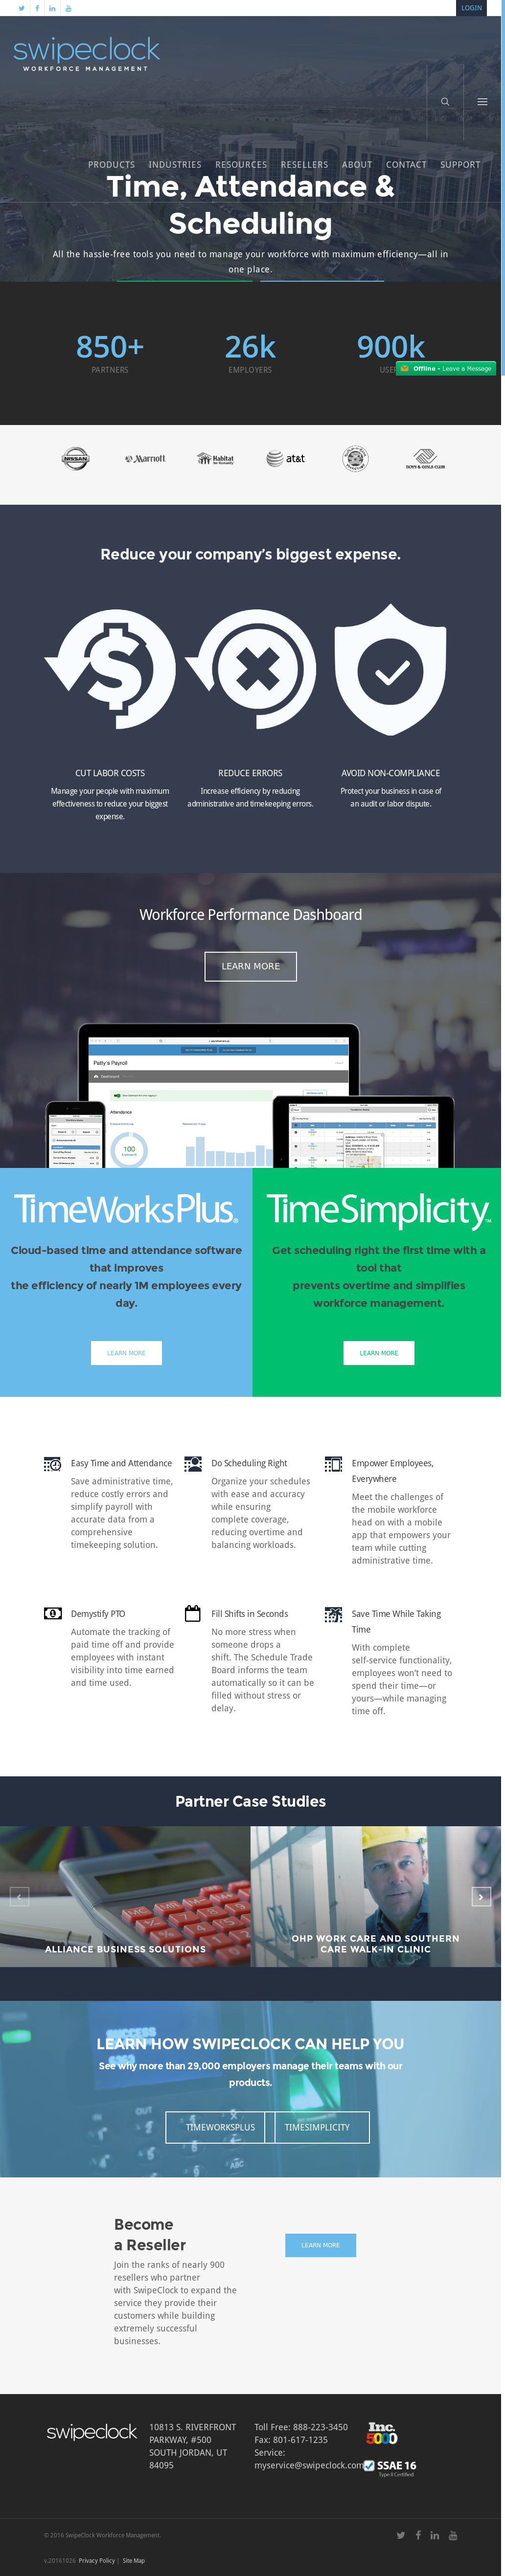 SwipeClock Competitors, Revenue and Employees - Owler Company Profile